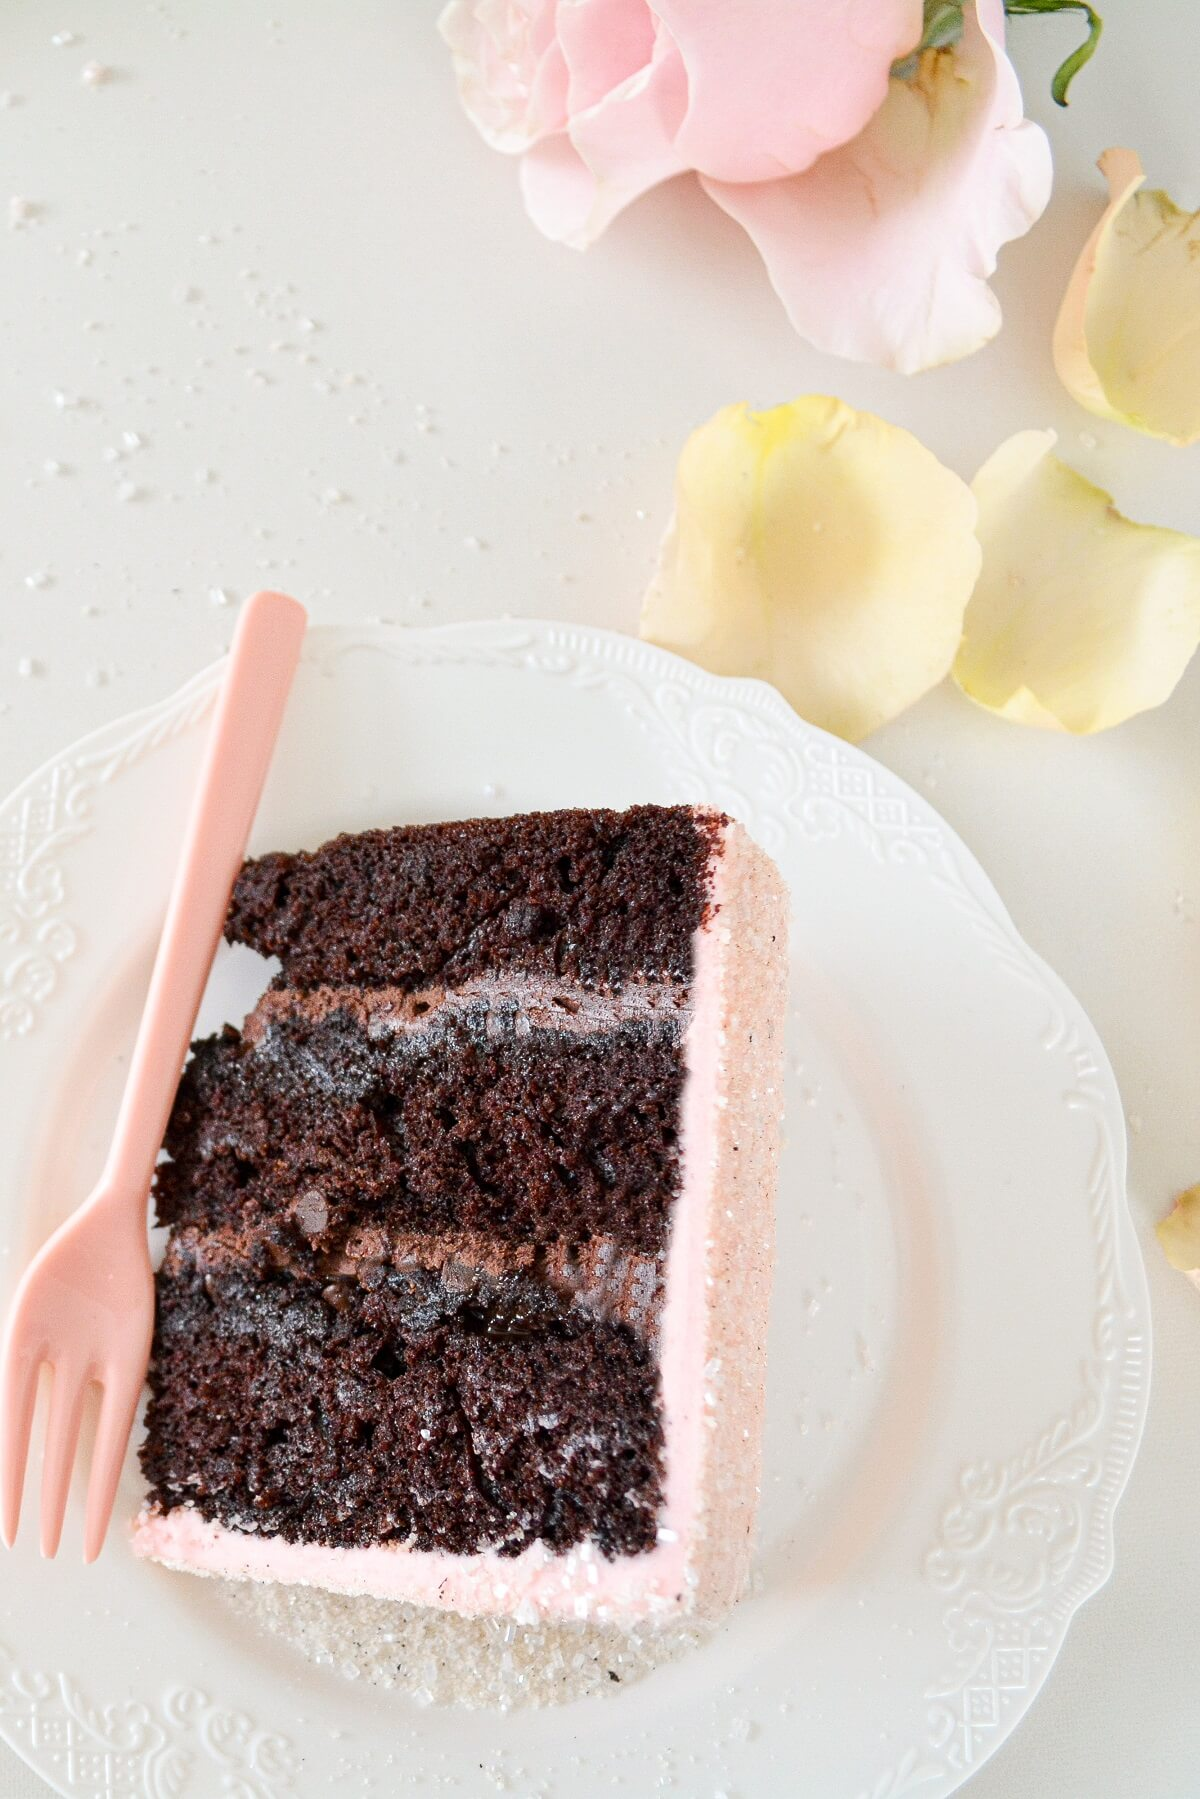 A slice of chocolate cake with chocolate filling and pink peppermint buttercream.